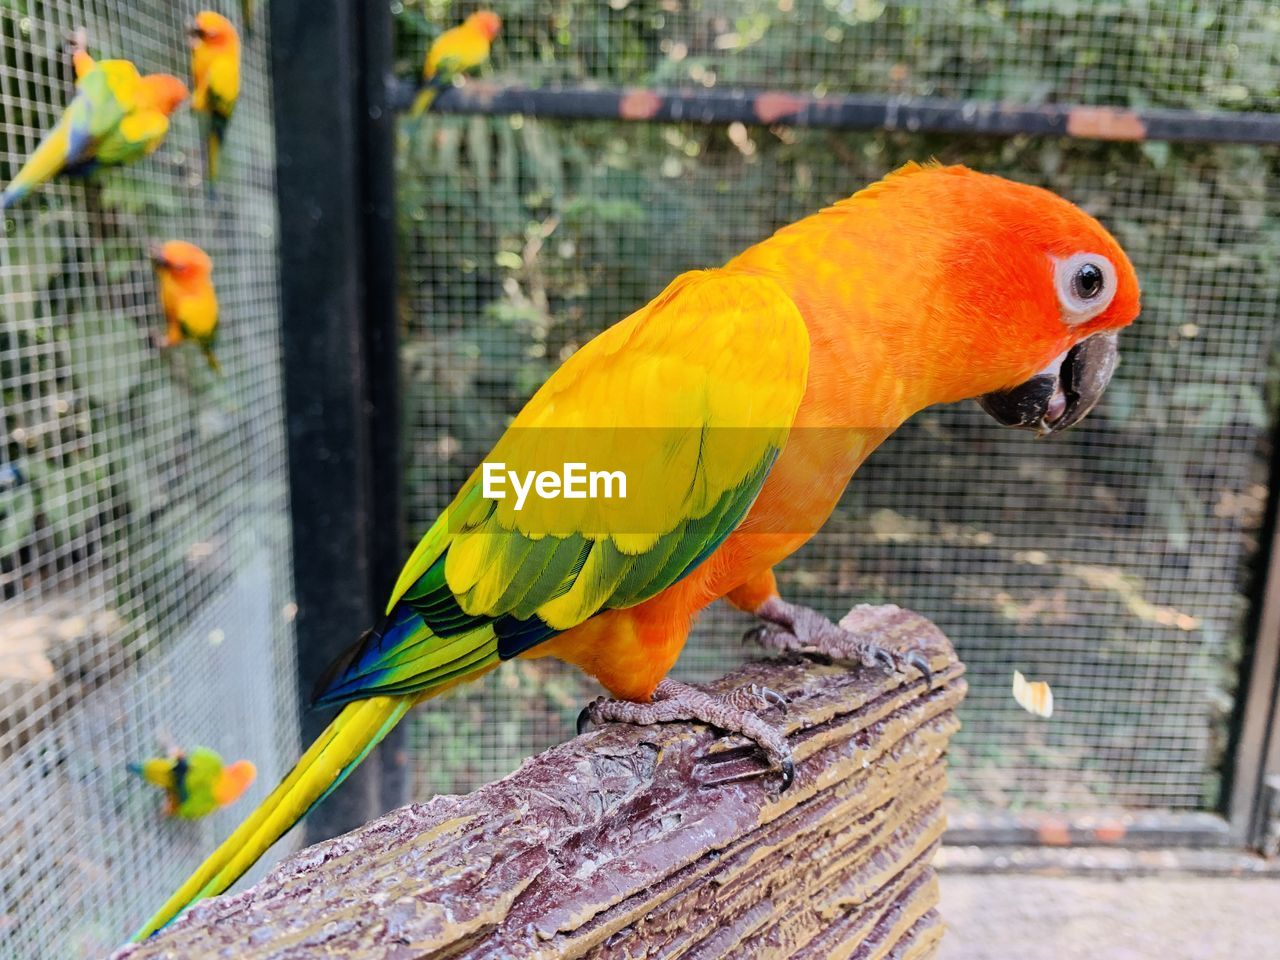 vertebrate, animal themes, animal, bird, animal wildlife, parrot, animals in the wild, cage, perching, animals in captivity, focus on foreground, one animal, no people, day, close-up, birdcage, metal, parakeet, zoo